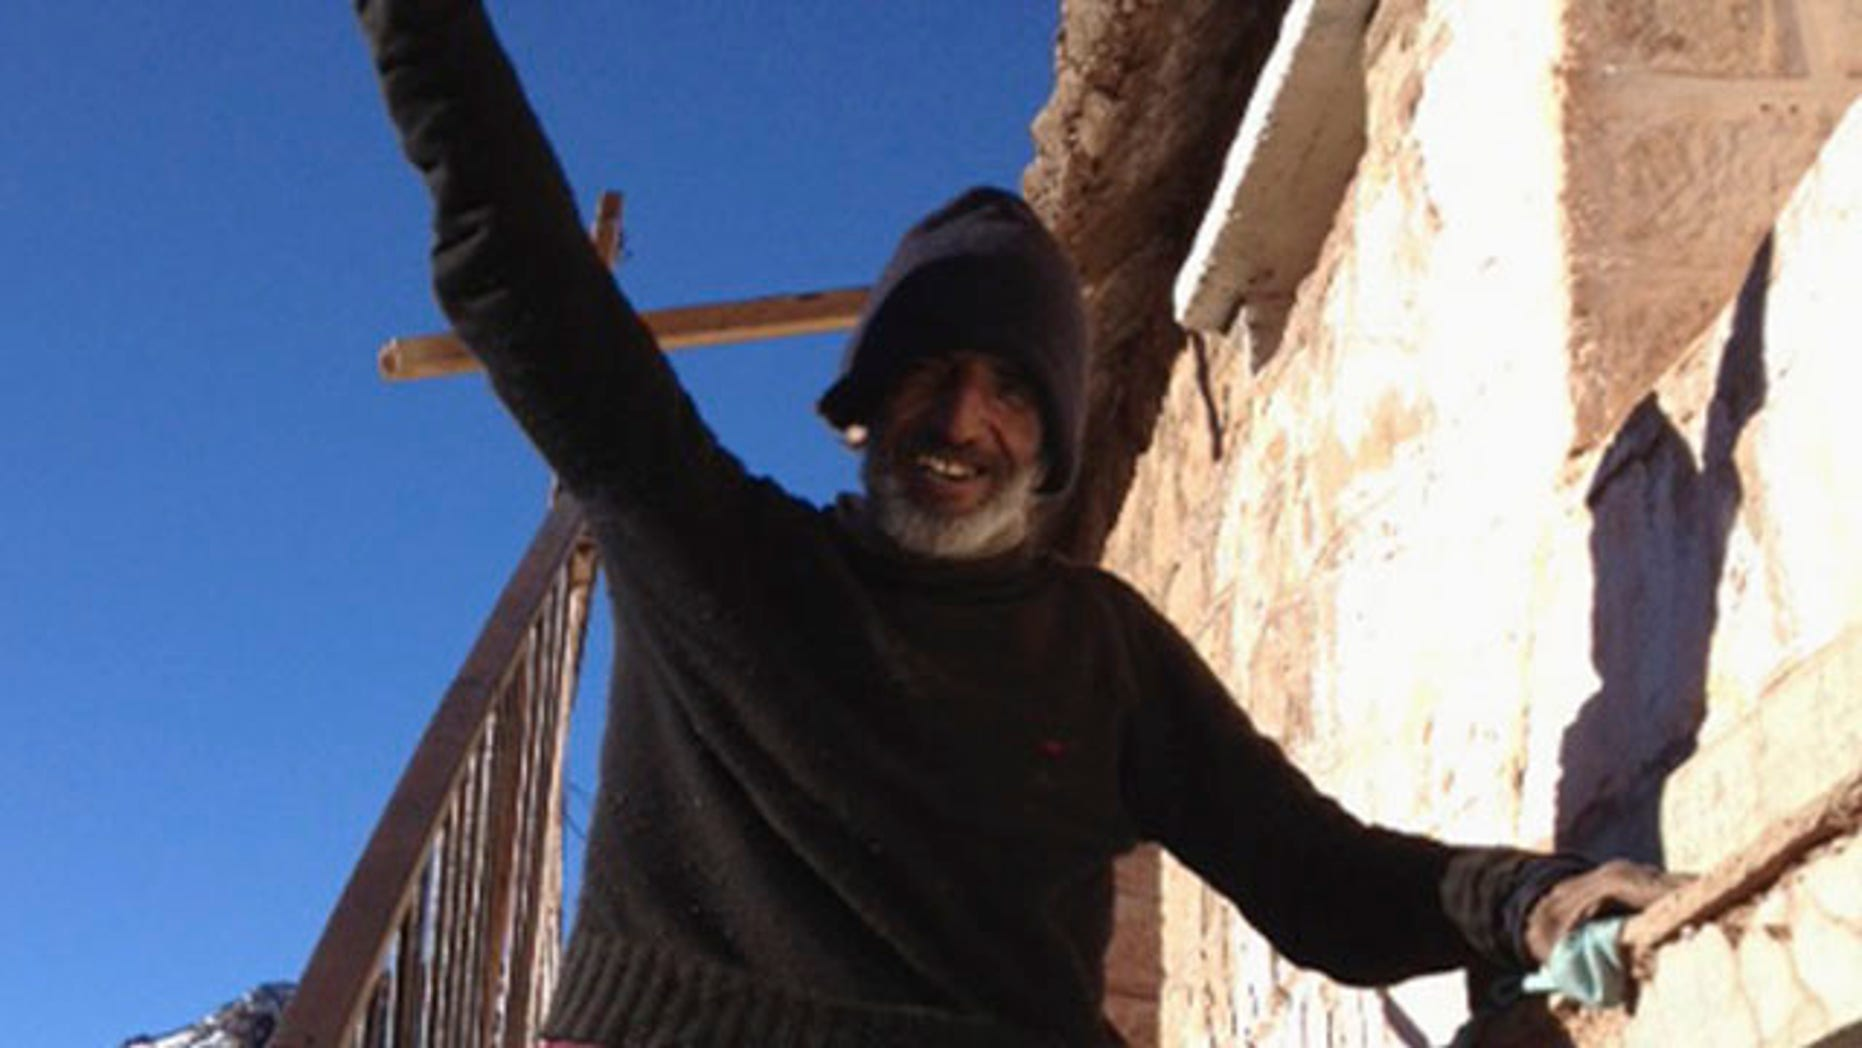 Sept, 8, 2013: Uruguayan man Raul Fernando Gomez Circunegui, 58, poses outside the shelter where he was found after disappearing four months ago in the remote Andes Mountains of San Juan Province.